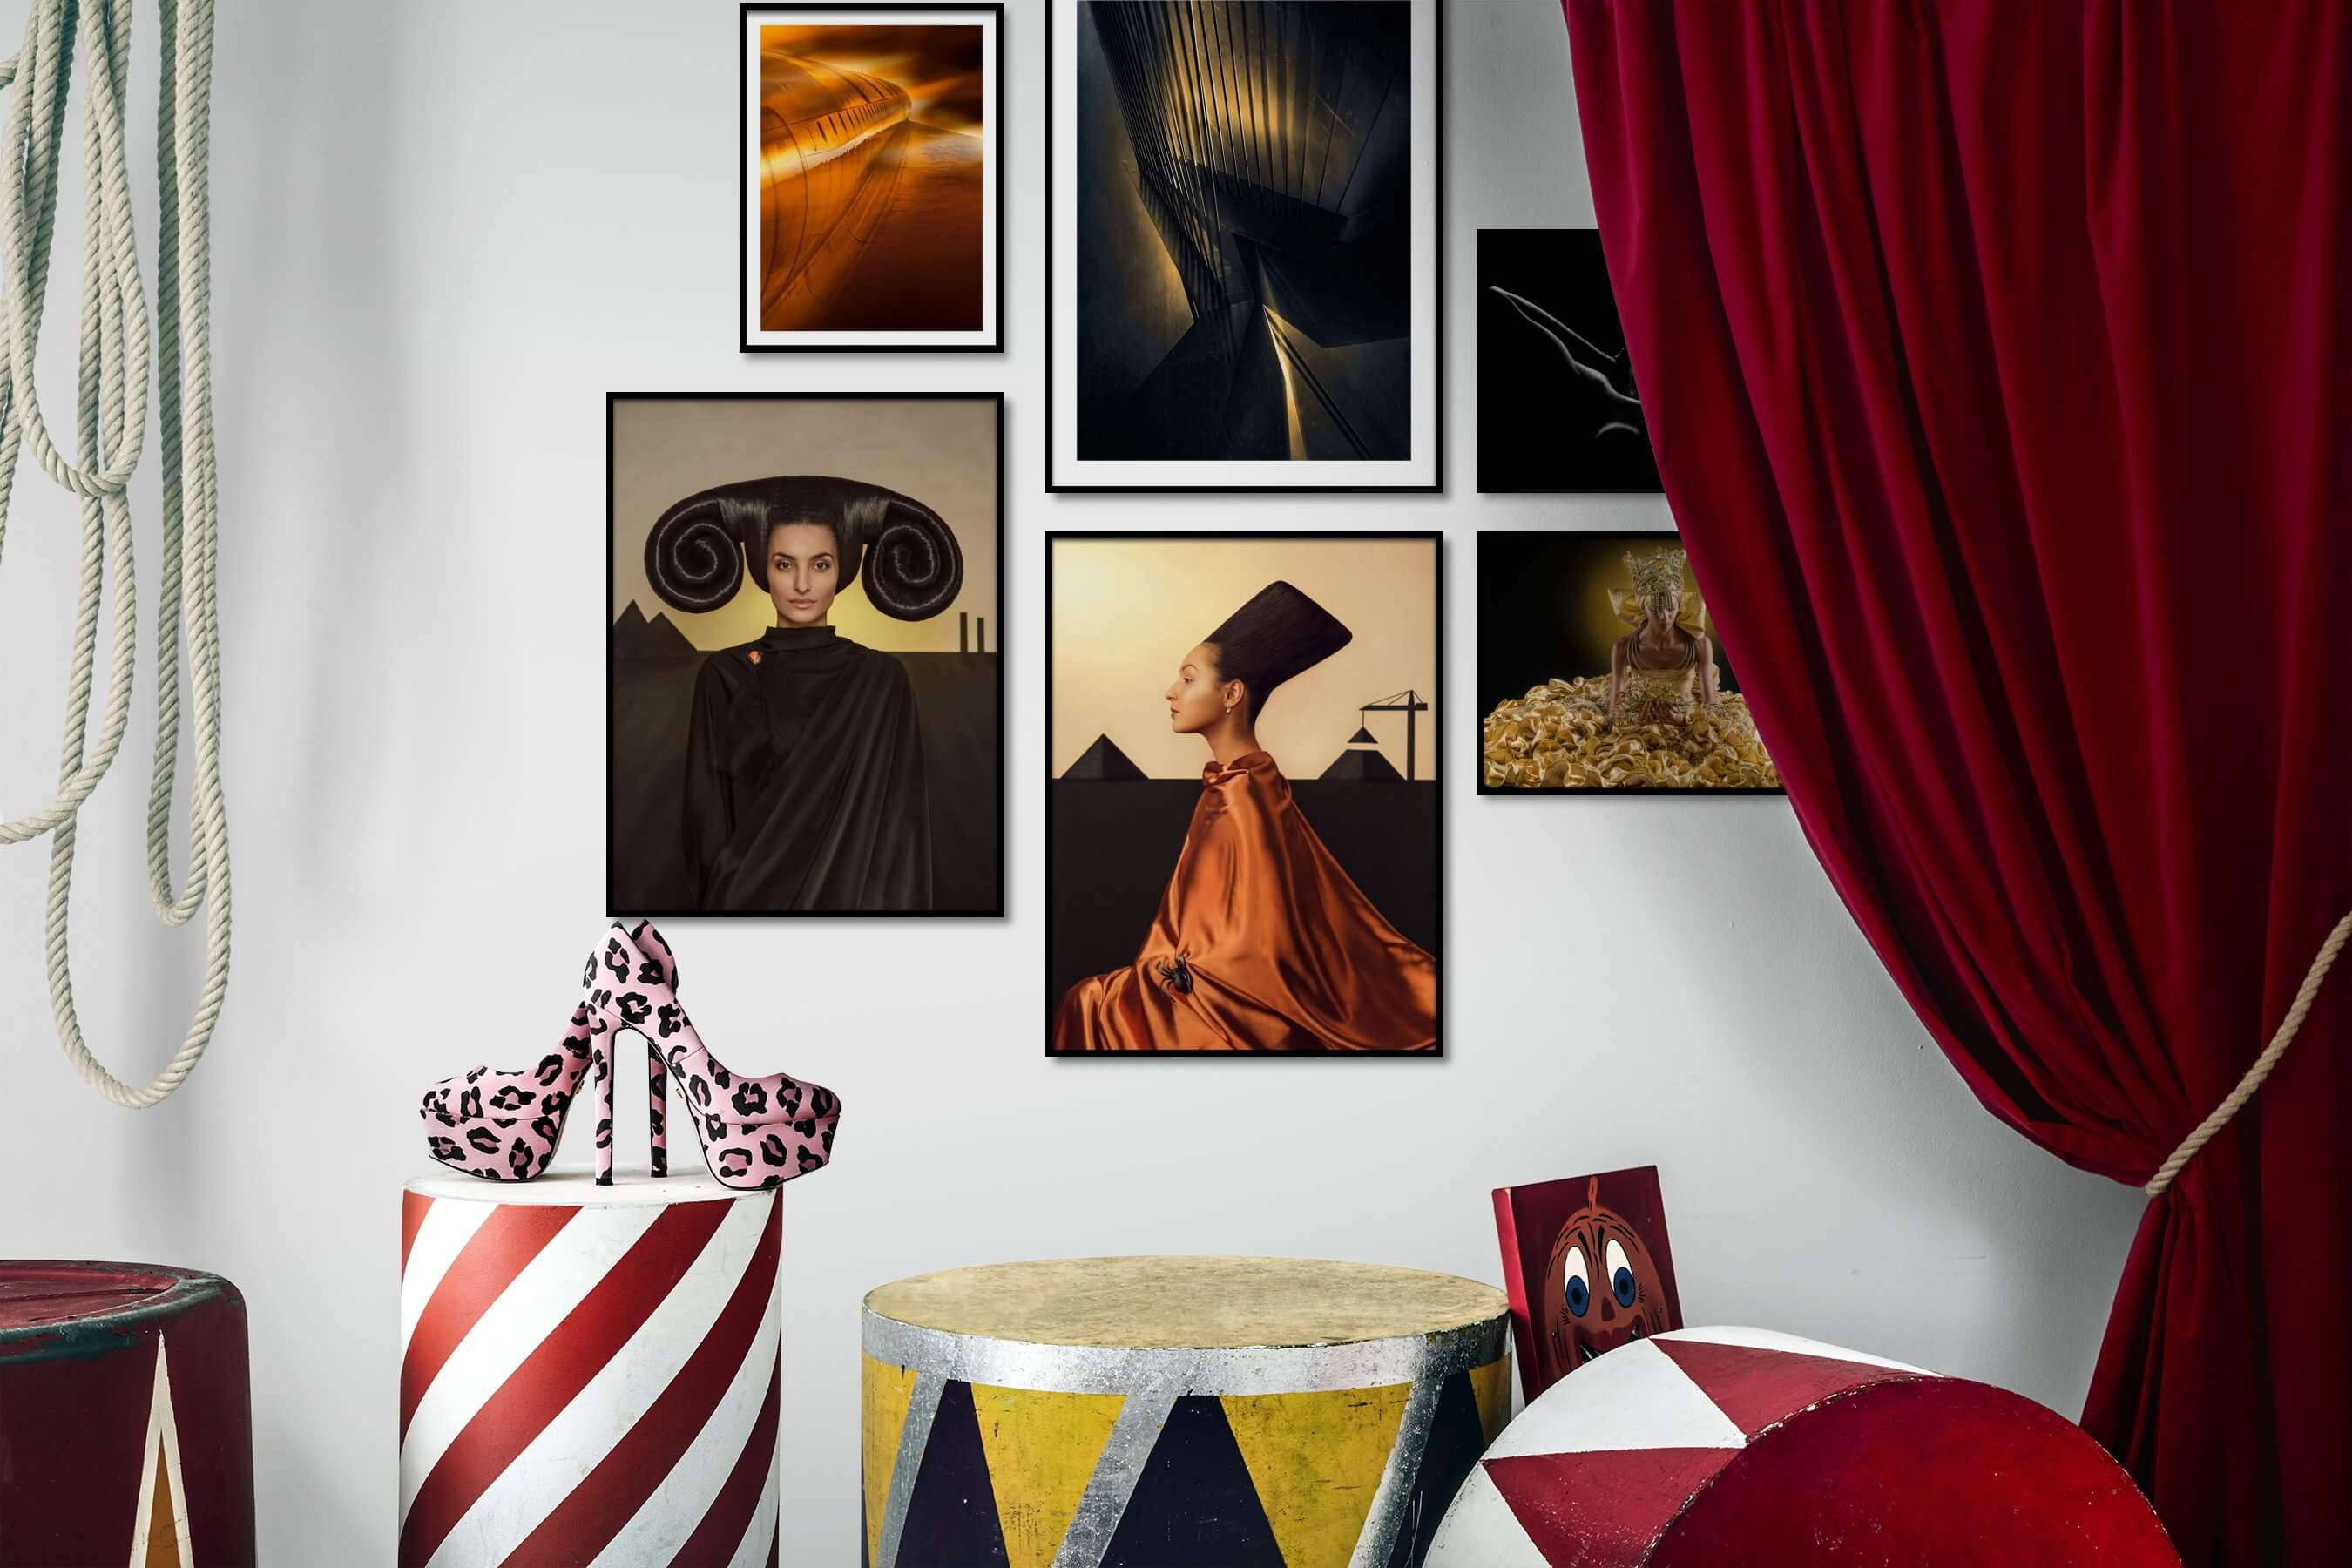 Gallery wall idea with six framed pictures arranged on a wall depicting For the Moderate, Artsy, Fashion & Beauty, Black & White, Dark Tones, and For the Minimalist